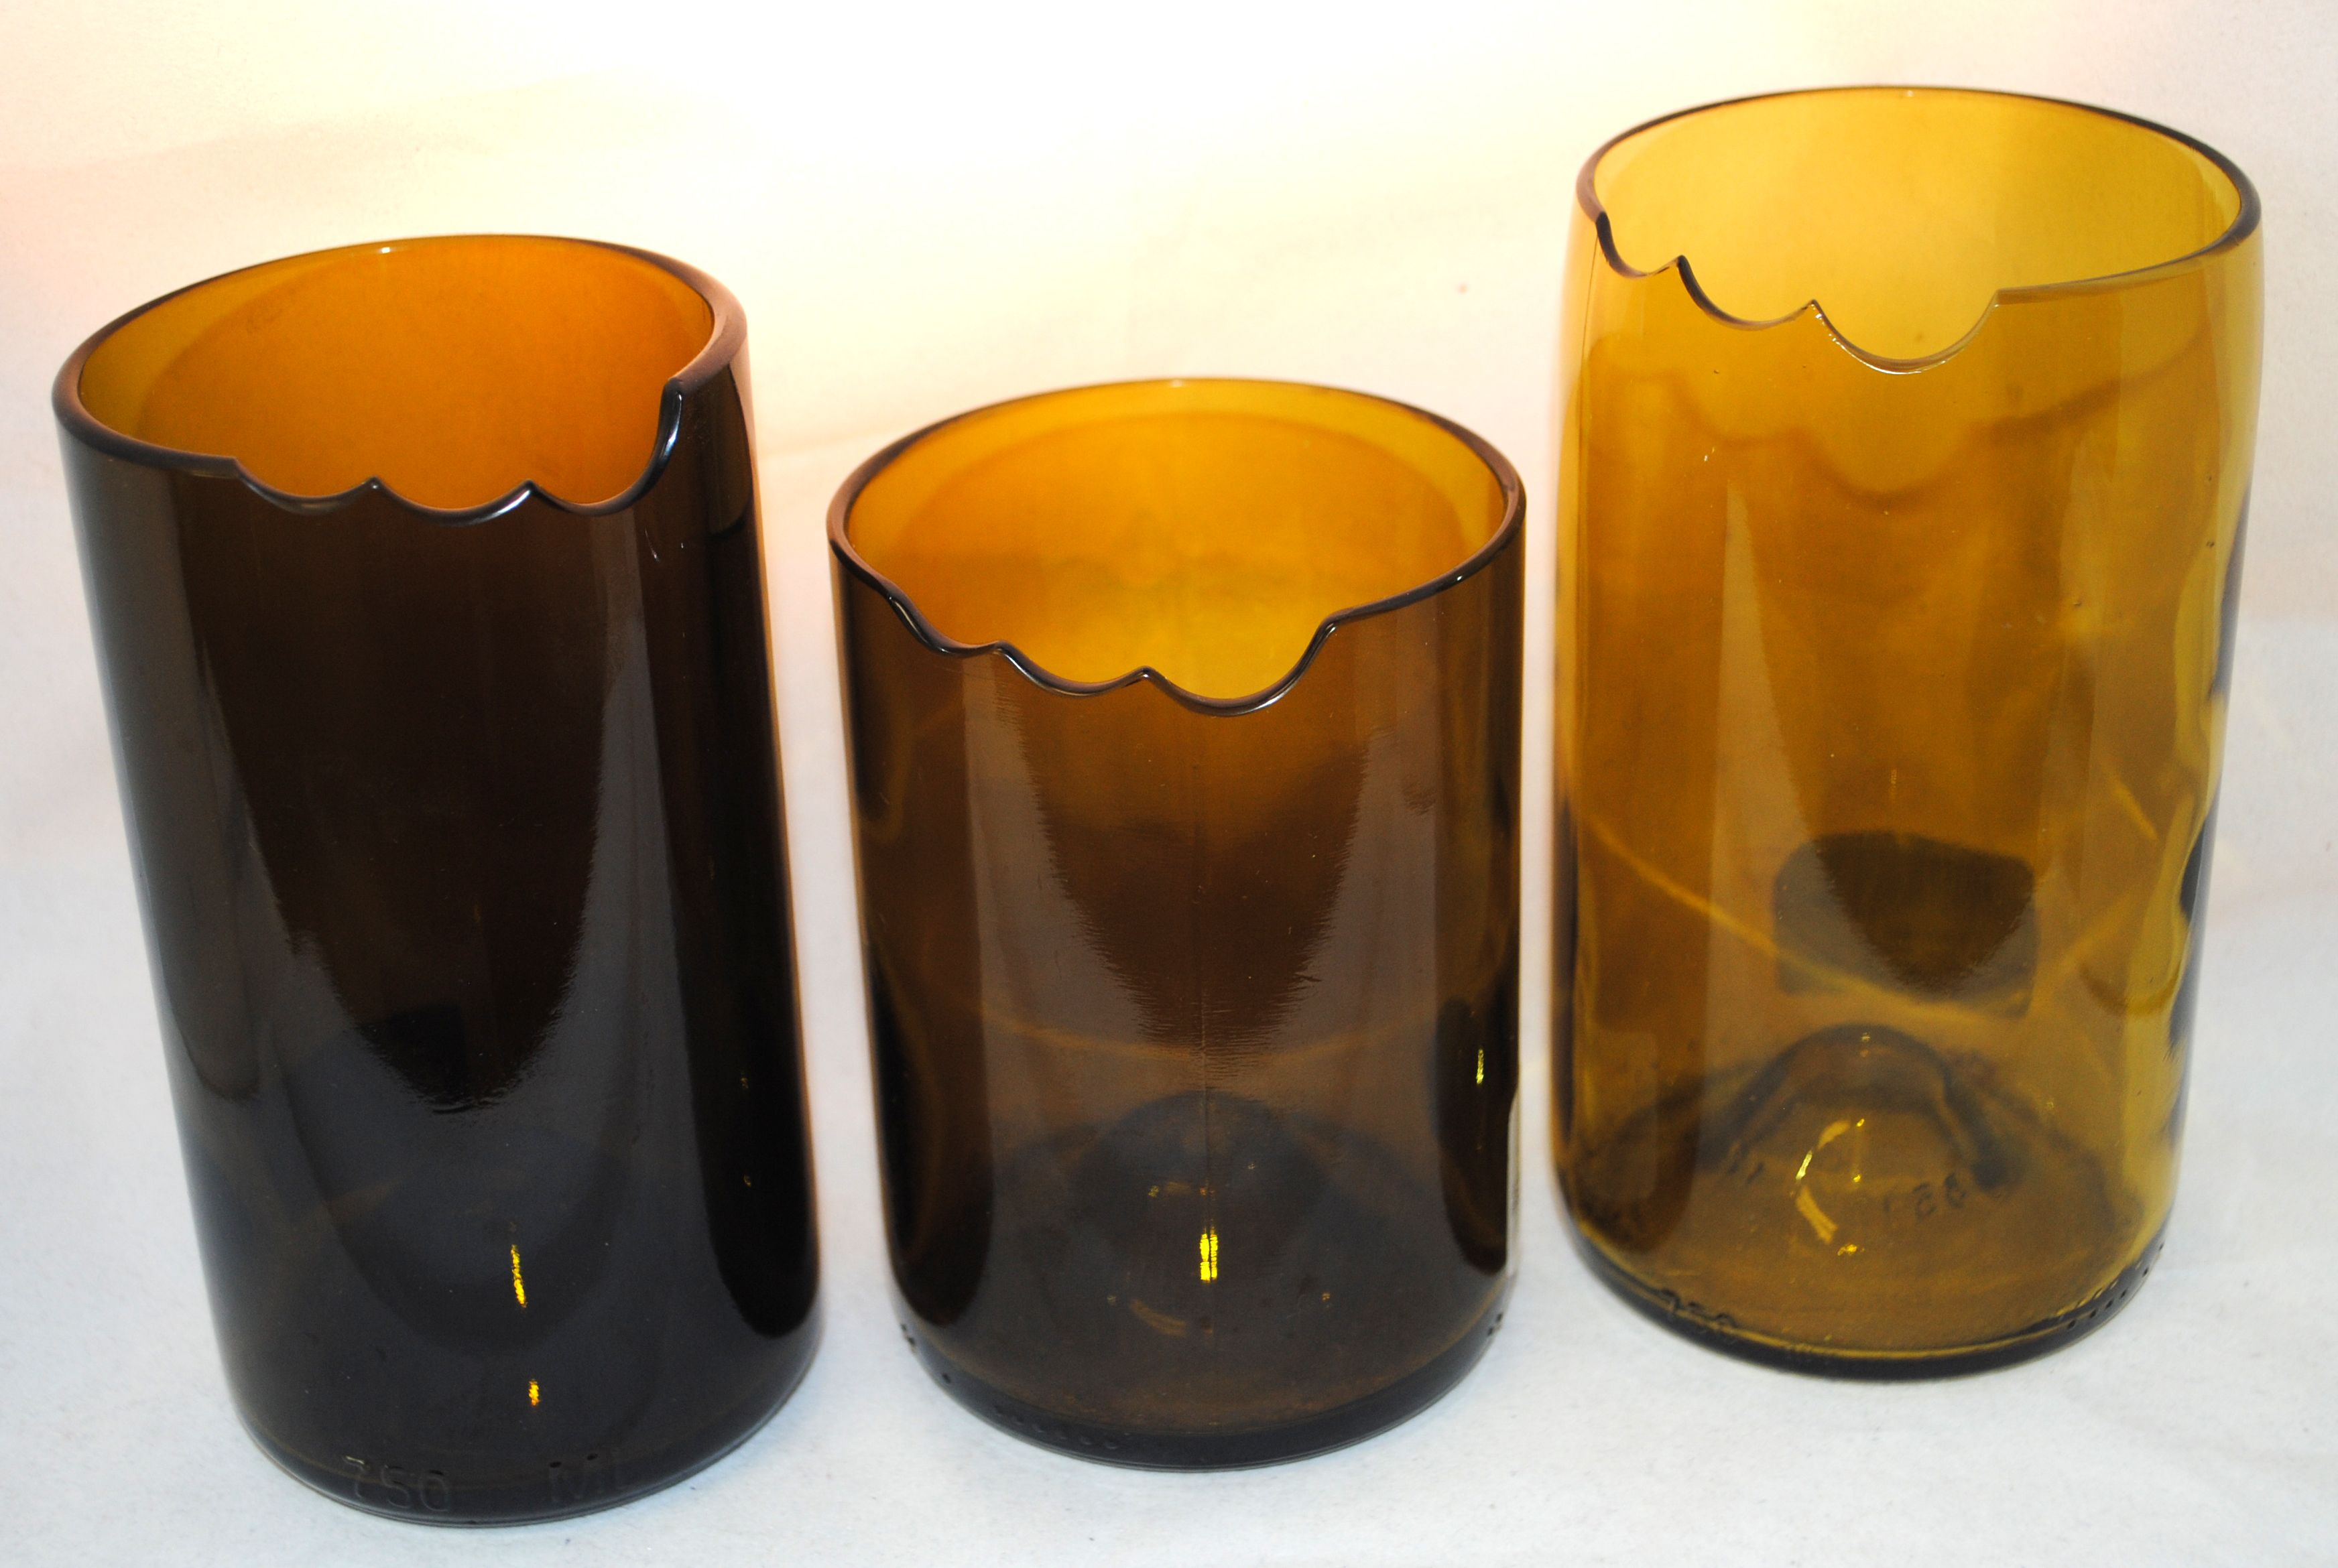 GLASS TUMBLER Made from upcycled wine bottles collected